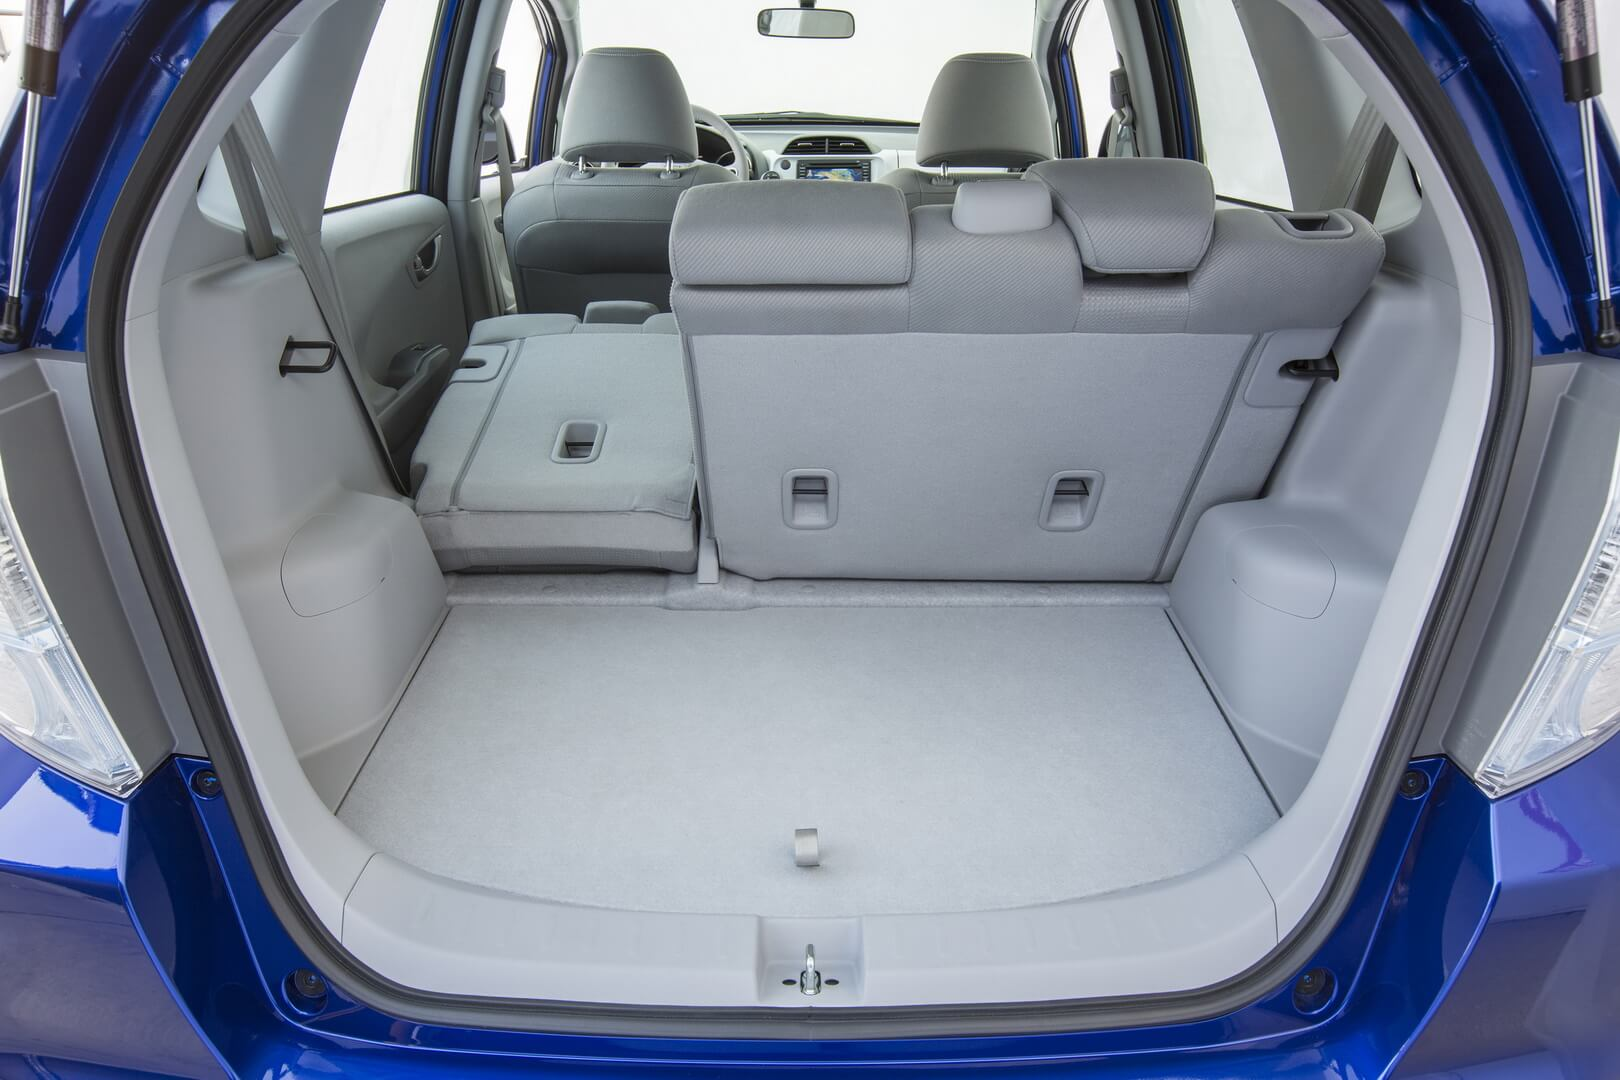 Honda Fit EV-interior-22